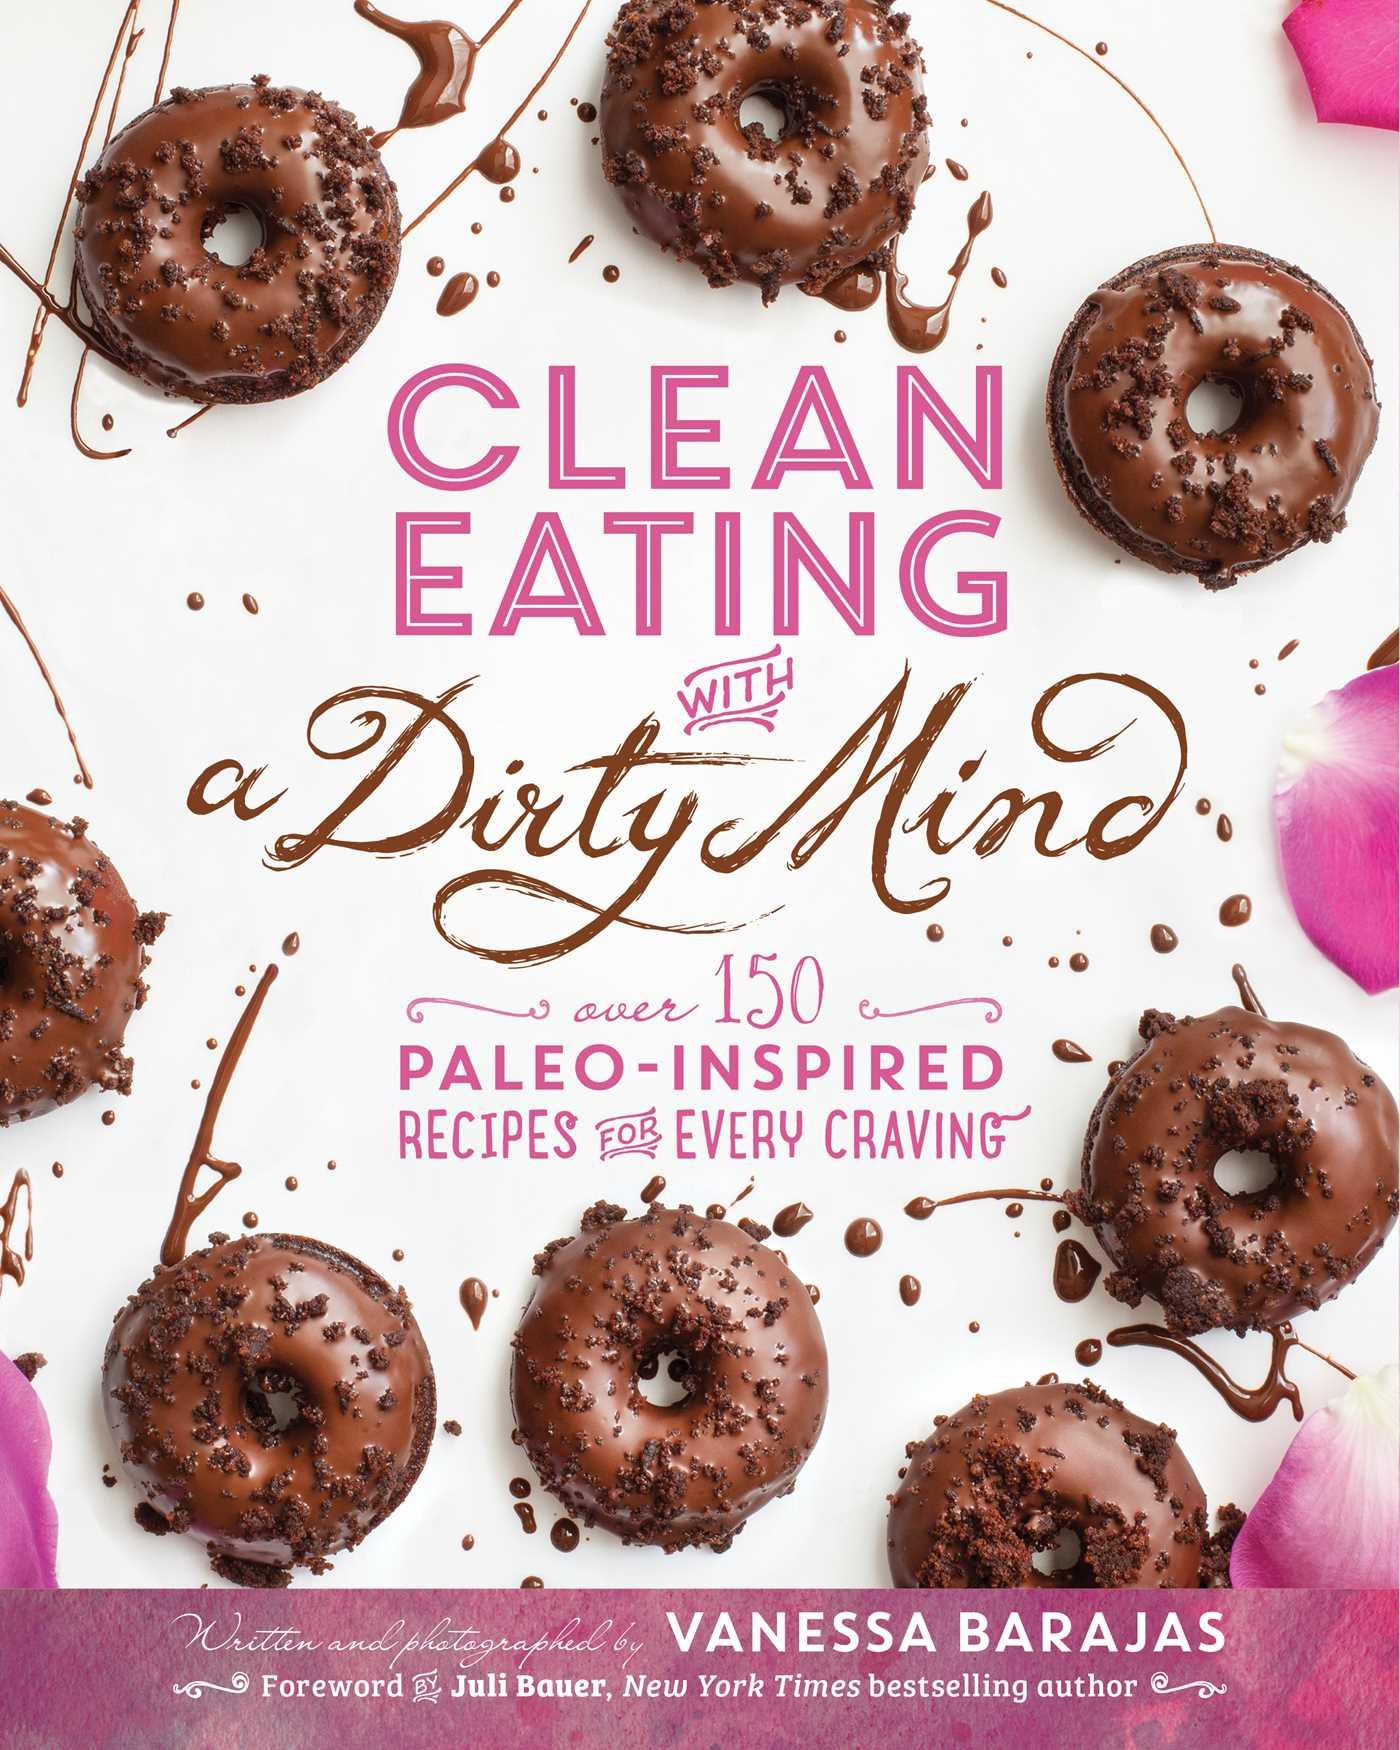 Clean eating with a dirty mind book by vanessa barajas juli bauer clean eating with a dirty mind 9781628600674 hr forumfinder Images